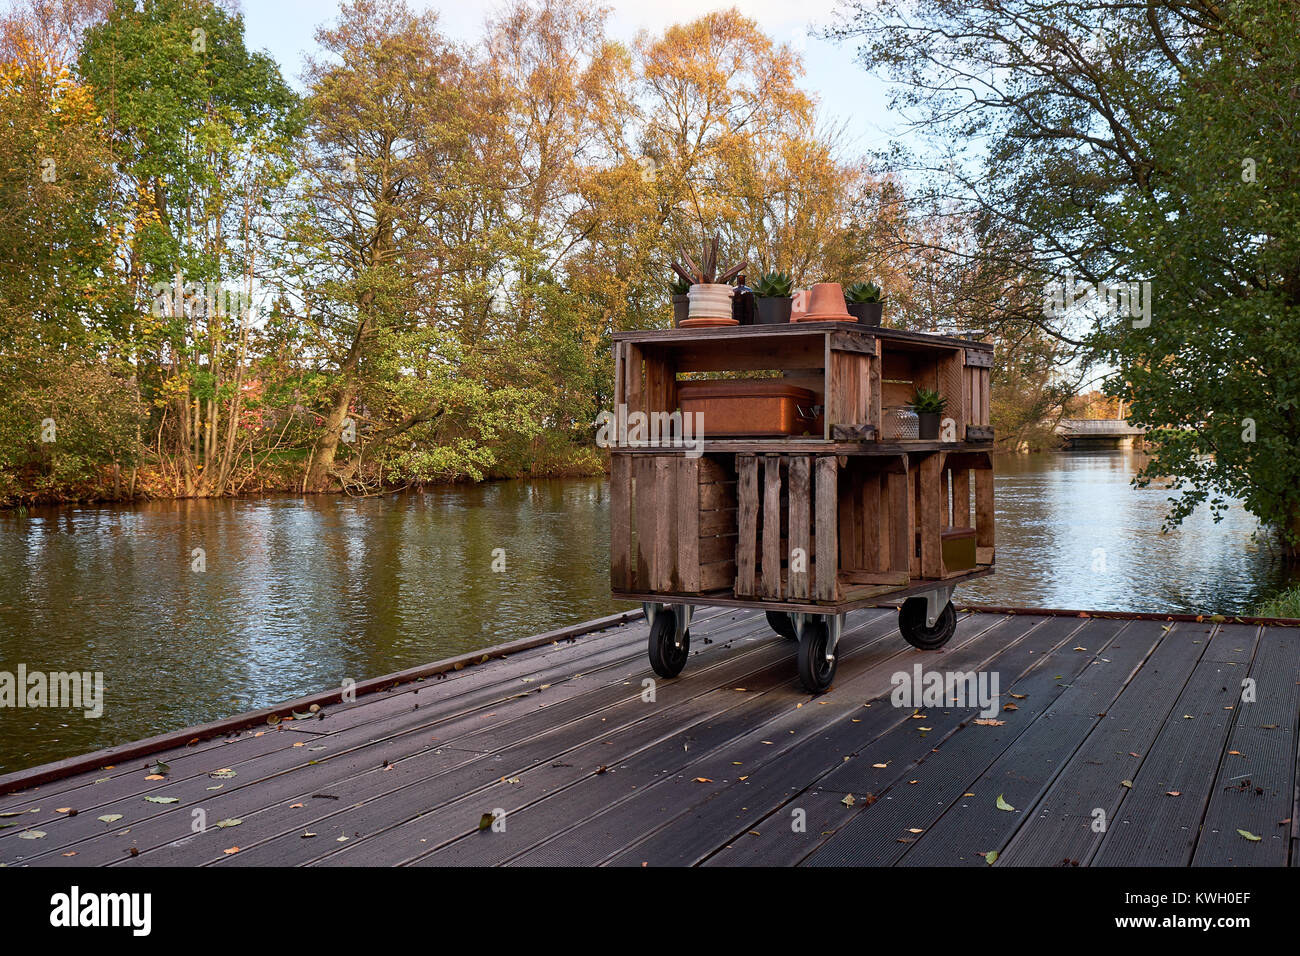 Home made storage furniture of wood boxes standing on a wooden jetty by a river - Stock Image